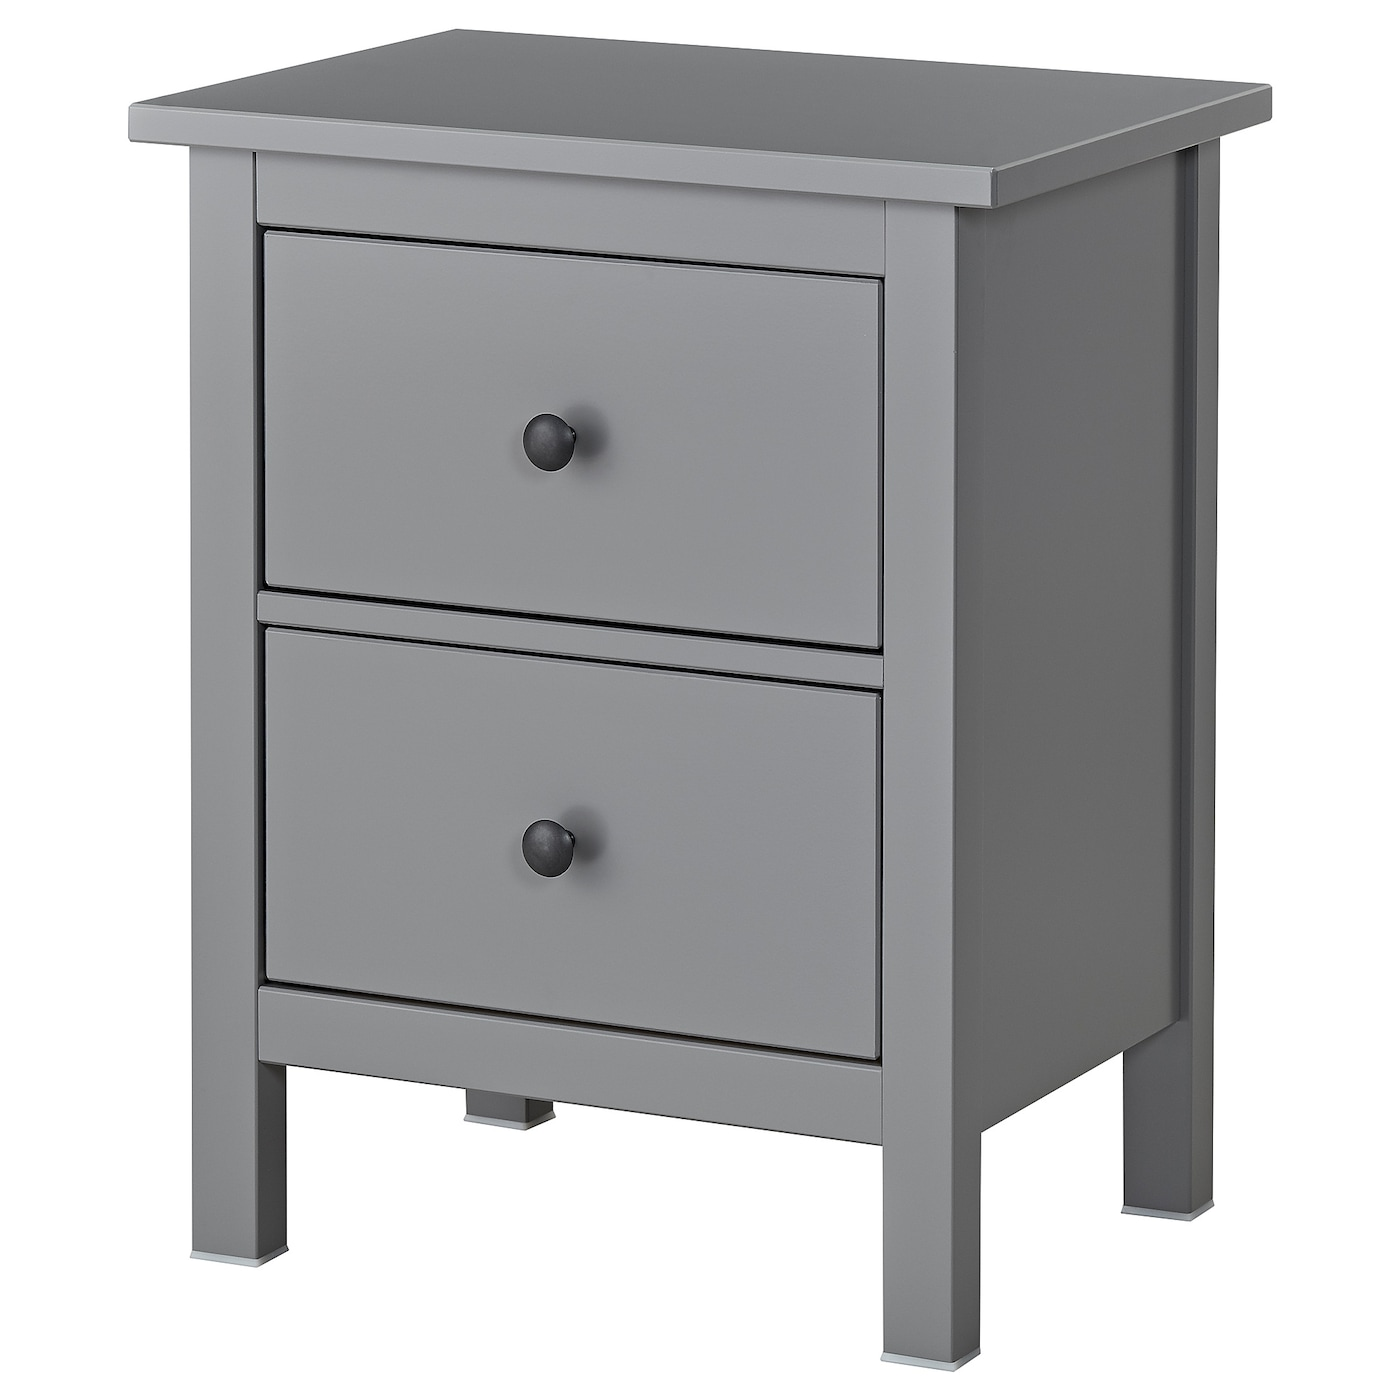 Ikea Hemnes Chest Of 2 Drawers Smooth Running With Pull Out Stop